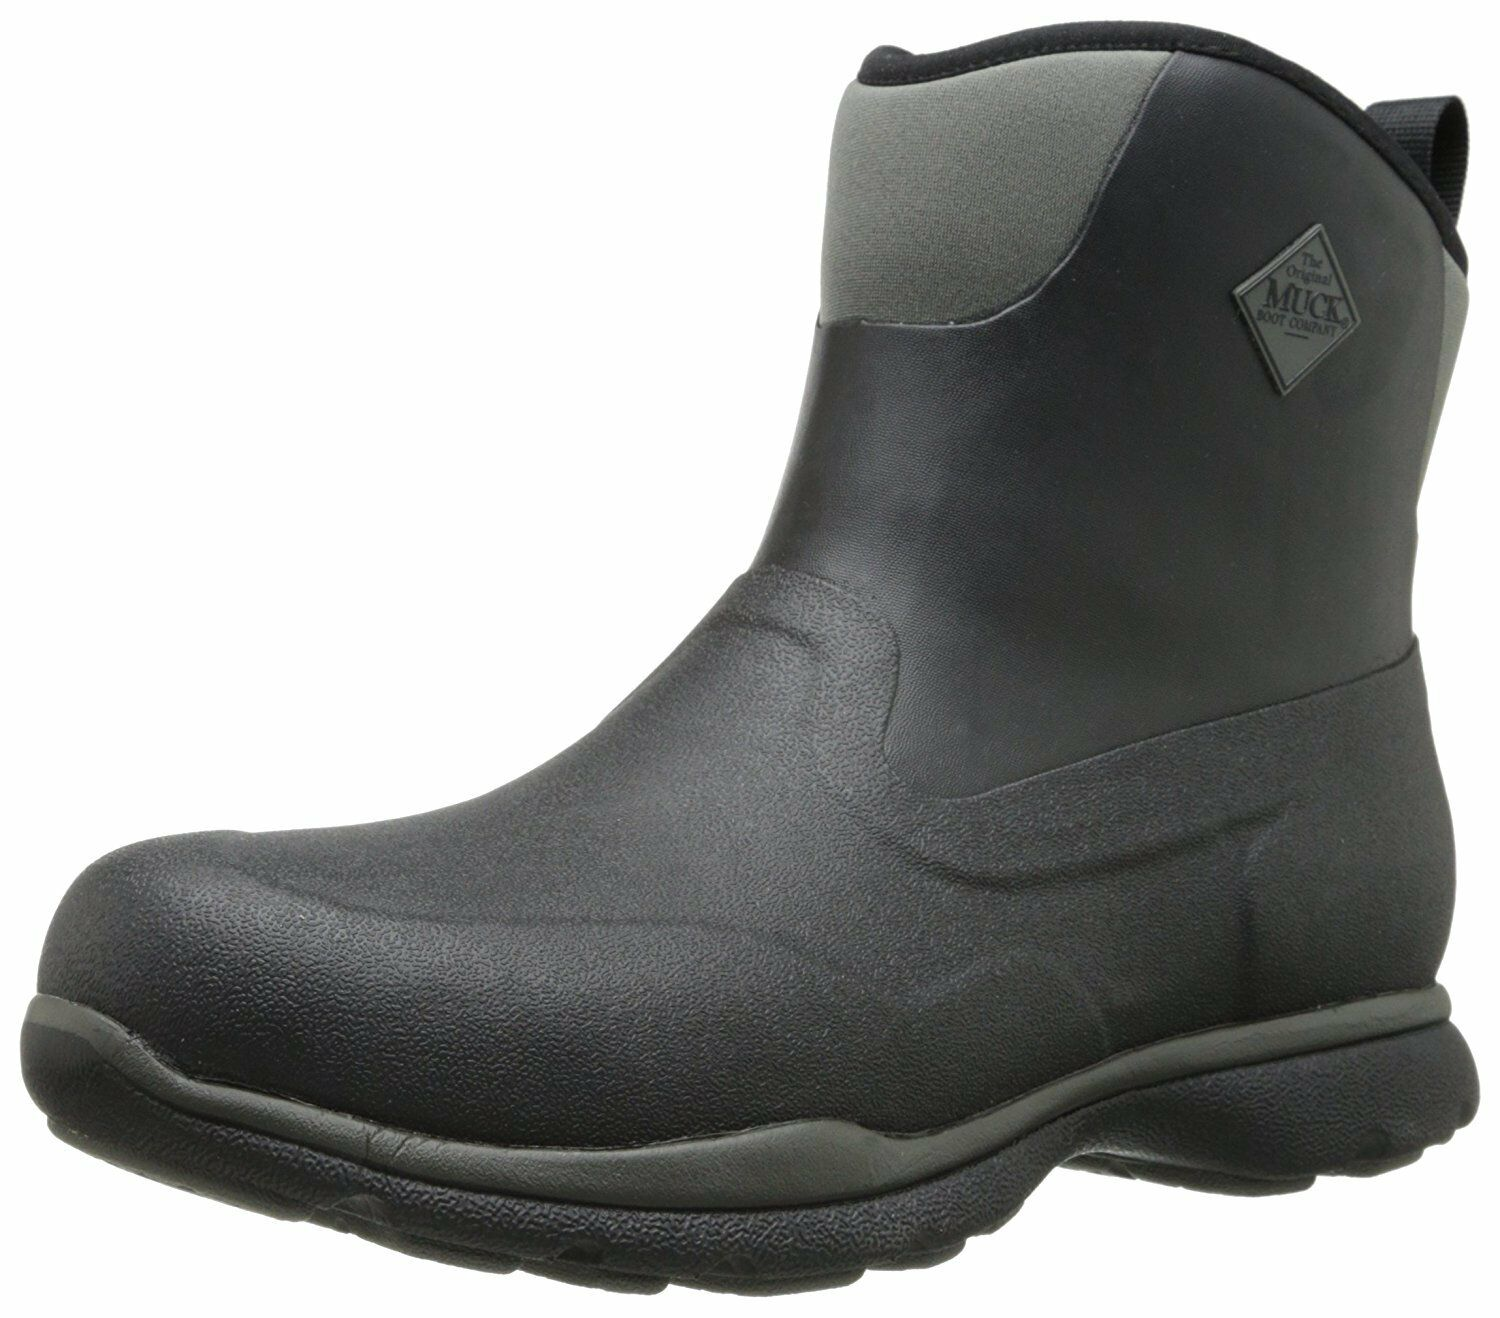 Muck Boot Mens Excursion Pro Mid Black Gunmetal  Outdoor Boot - 11 DM US